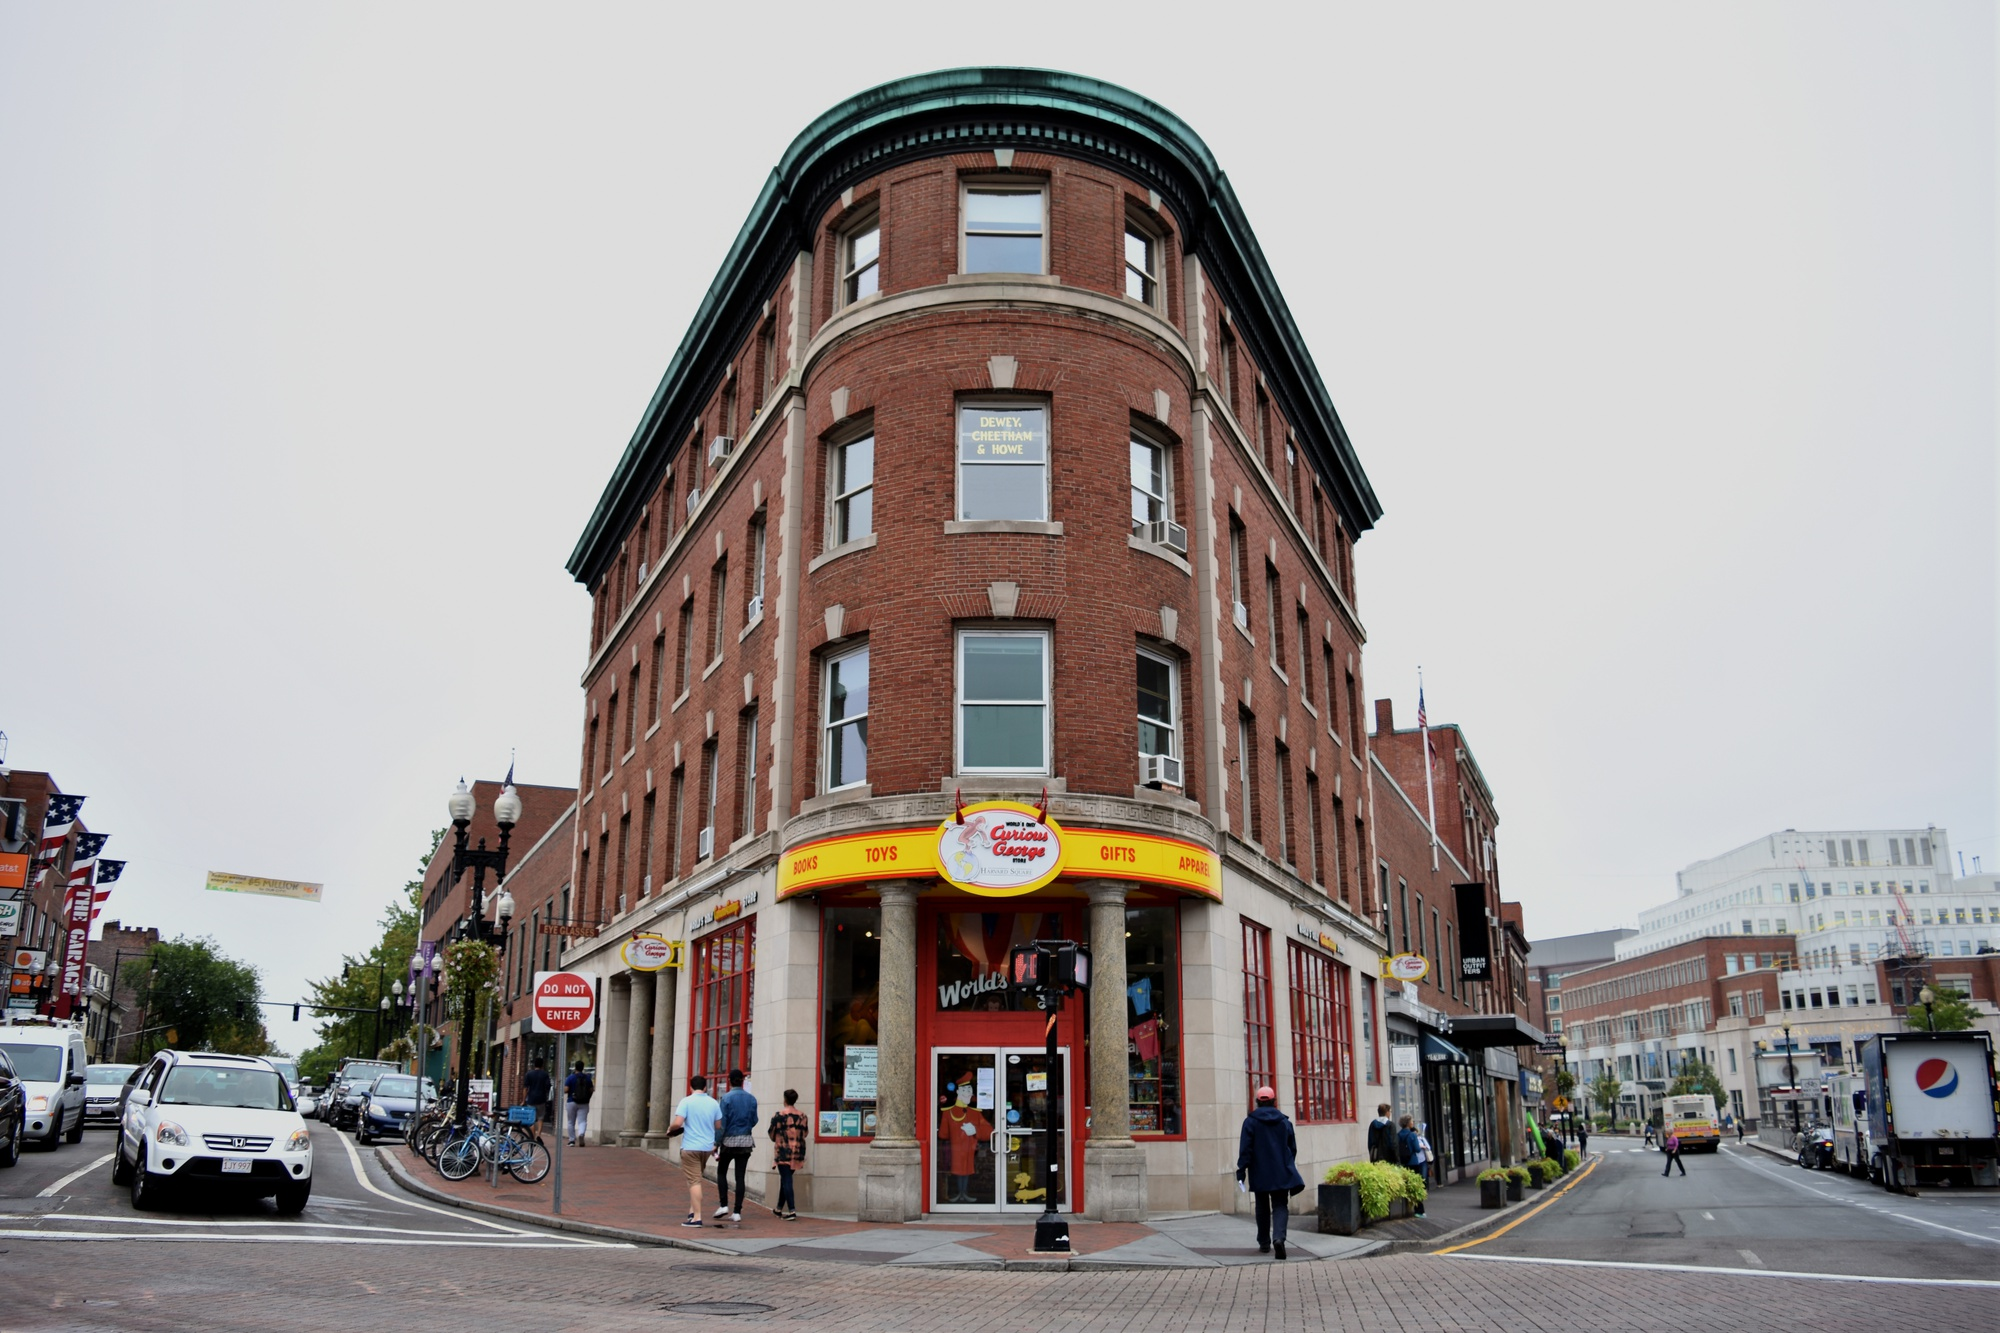 Pedestrians walk by the first Curious George store, a well-known spot in Harvard Square that is now closing down business.